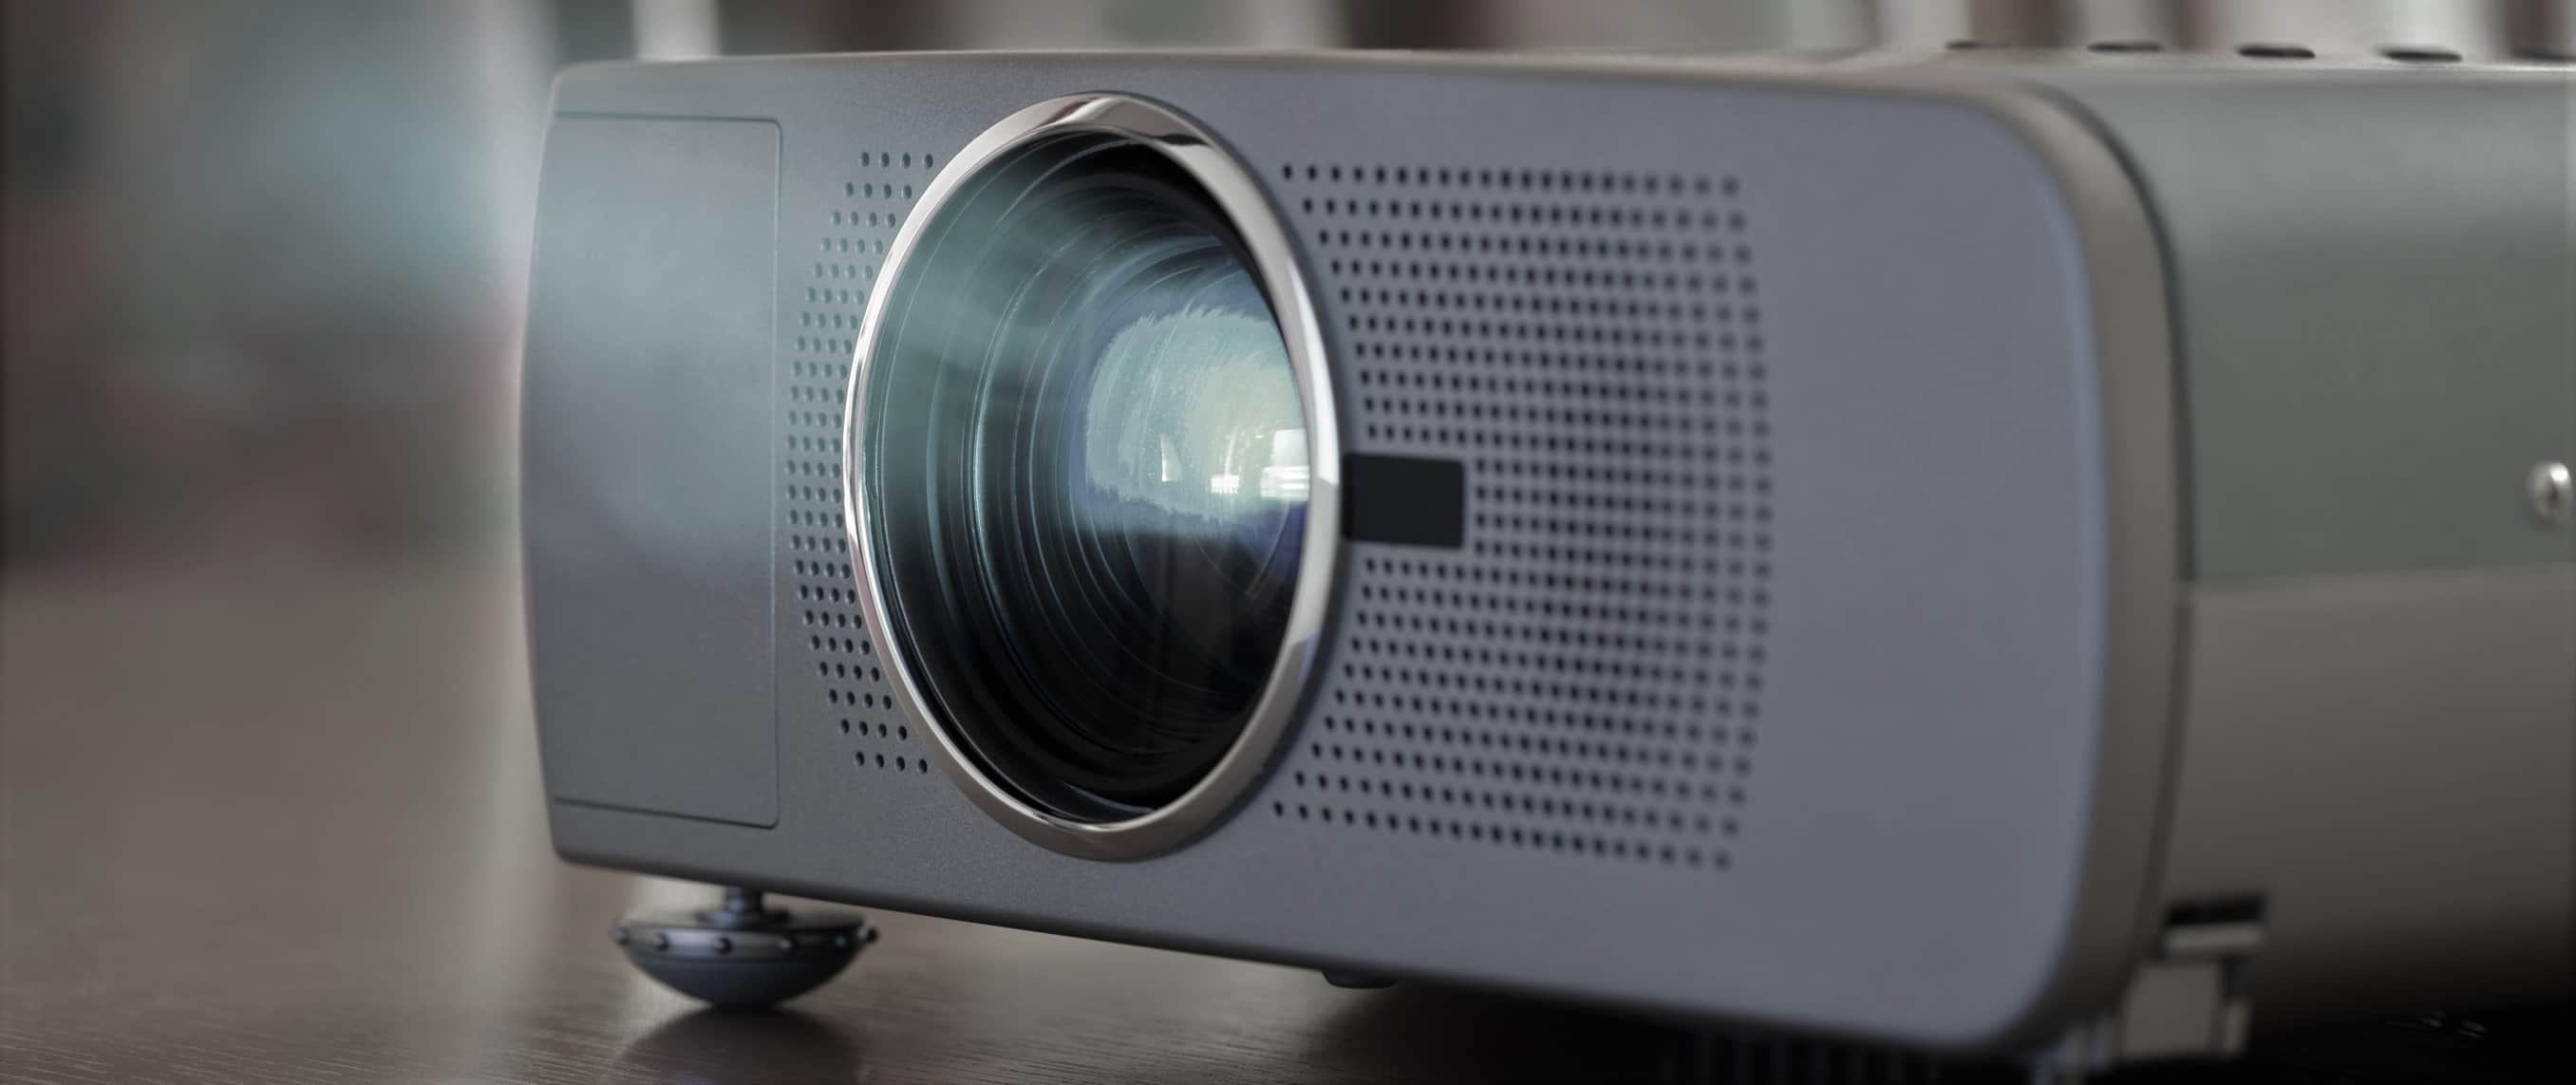 10 Best Projectors under $100 (Aug  2019) - Reviews & Buying Guide